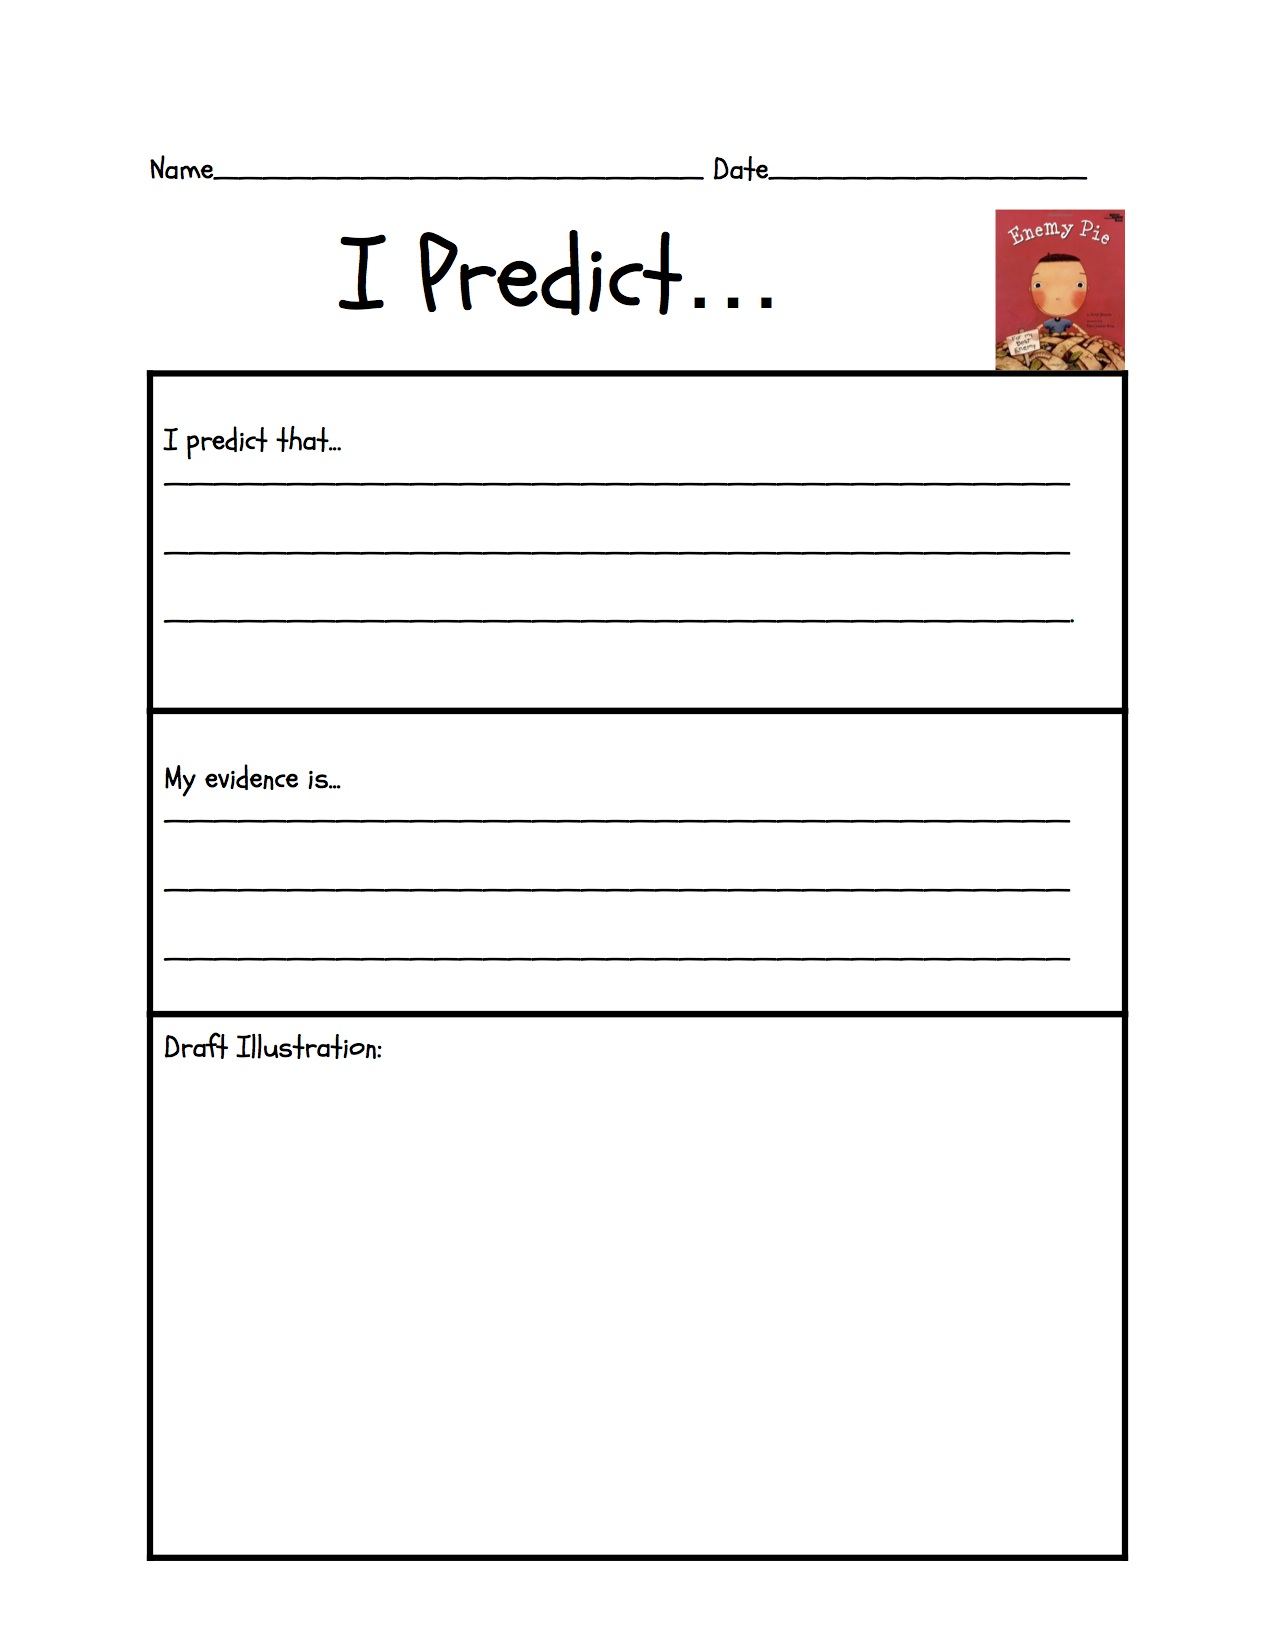 Predicting Outcomes Worksheets Second Grade Predicting Best Free Printable Worksheets